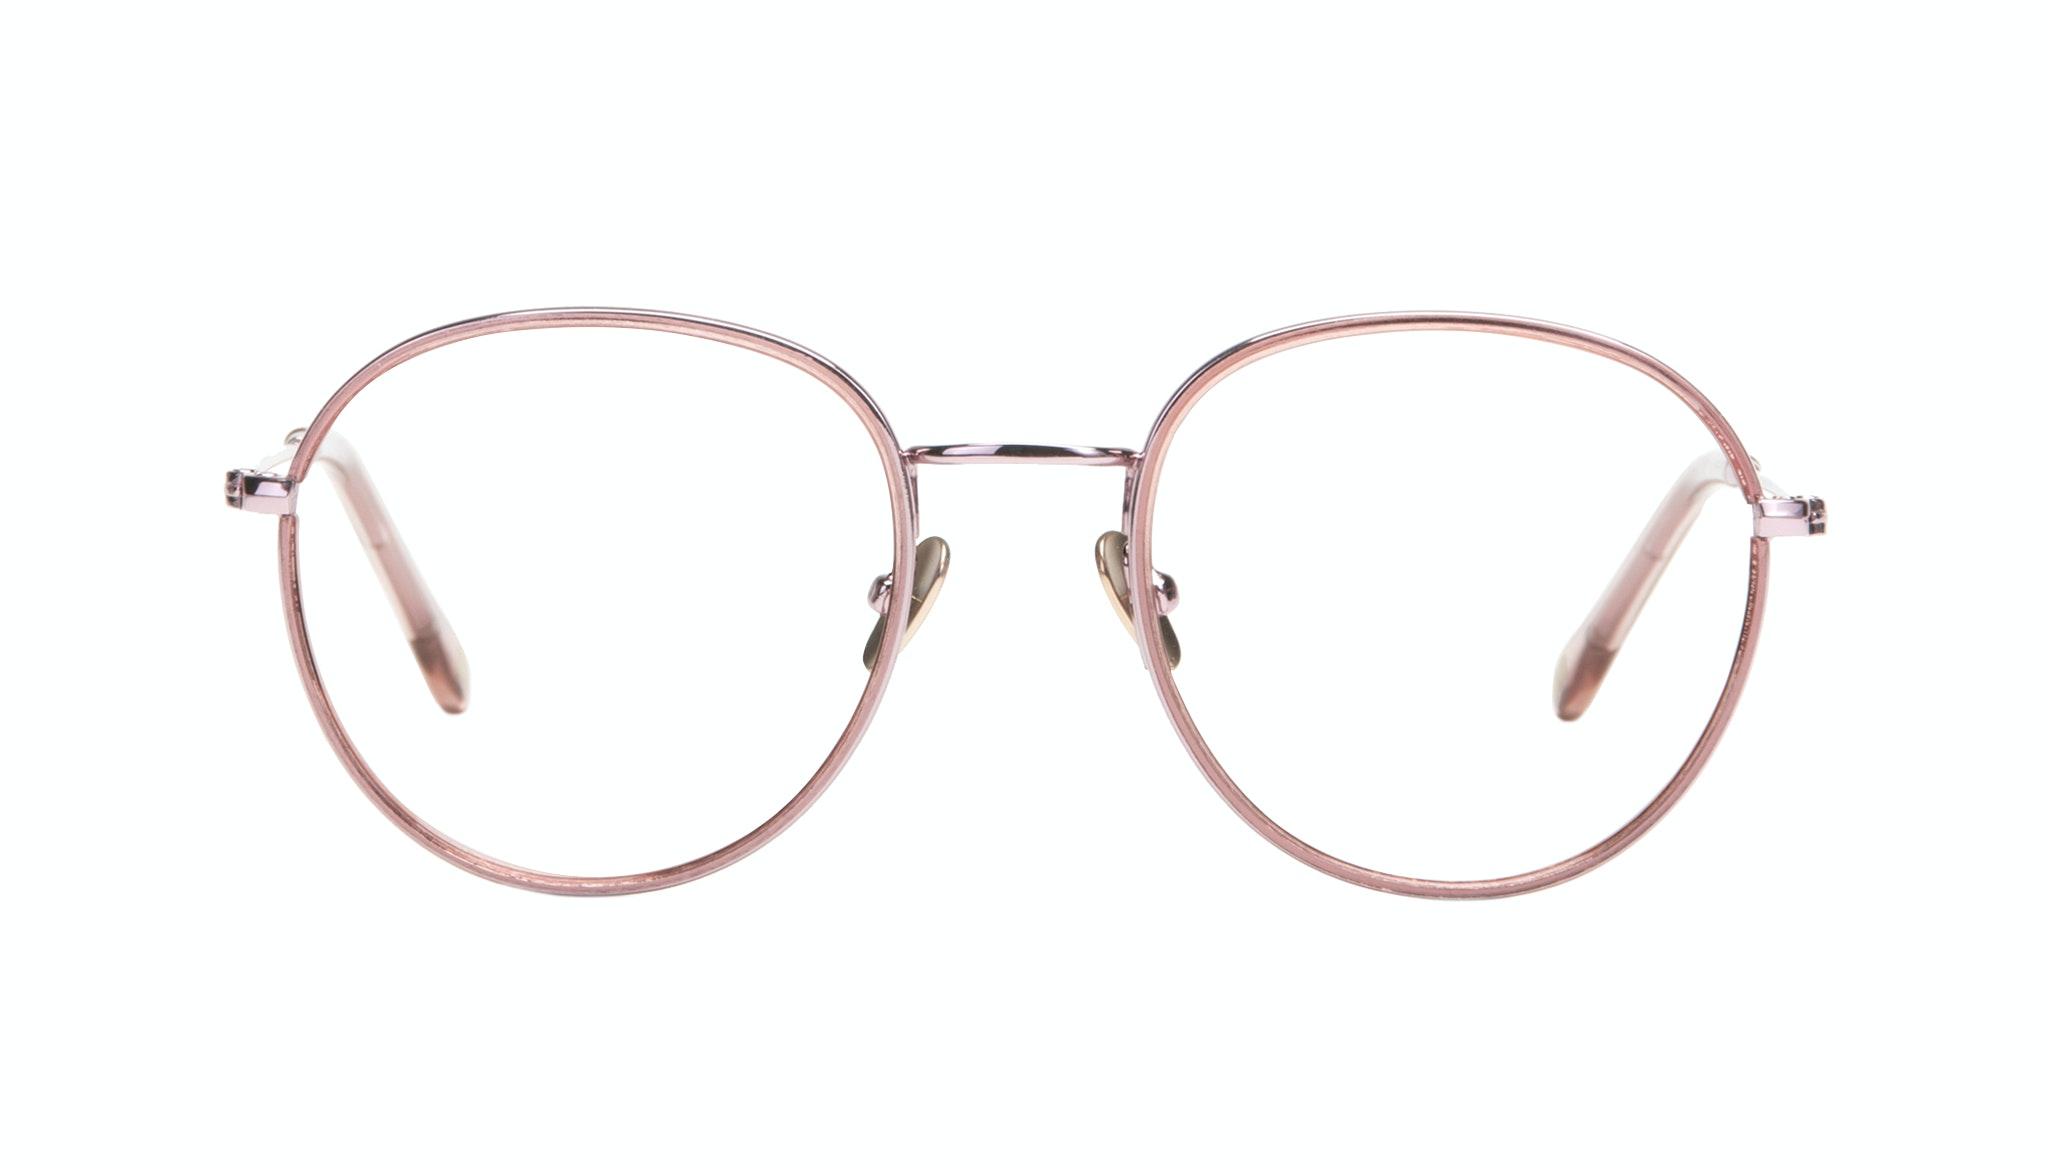 Affordable Fashion Glasses Aviator Round Eyeglasses Women Subrosa Romance